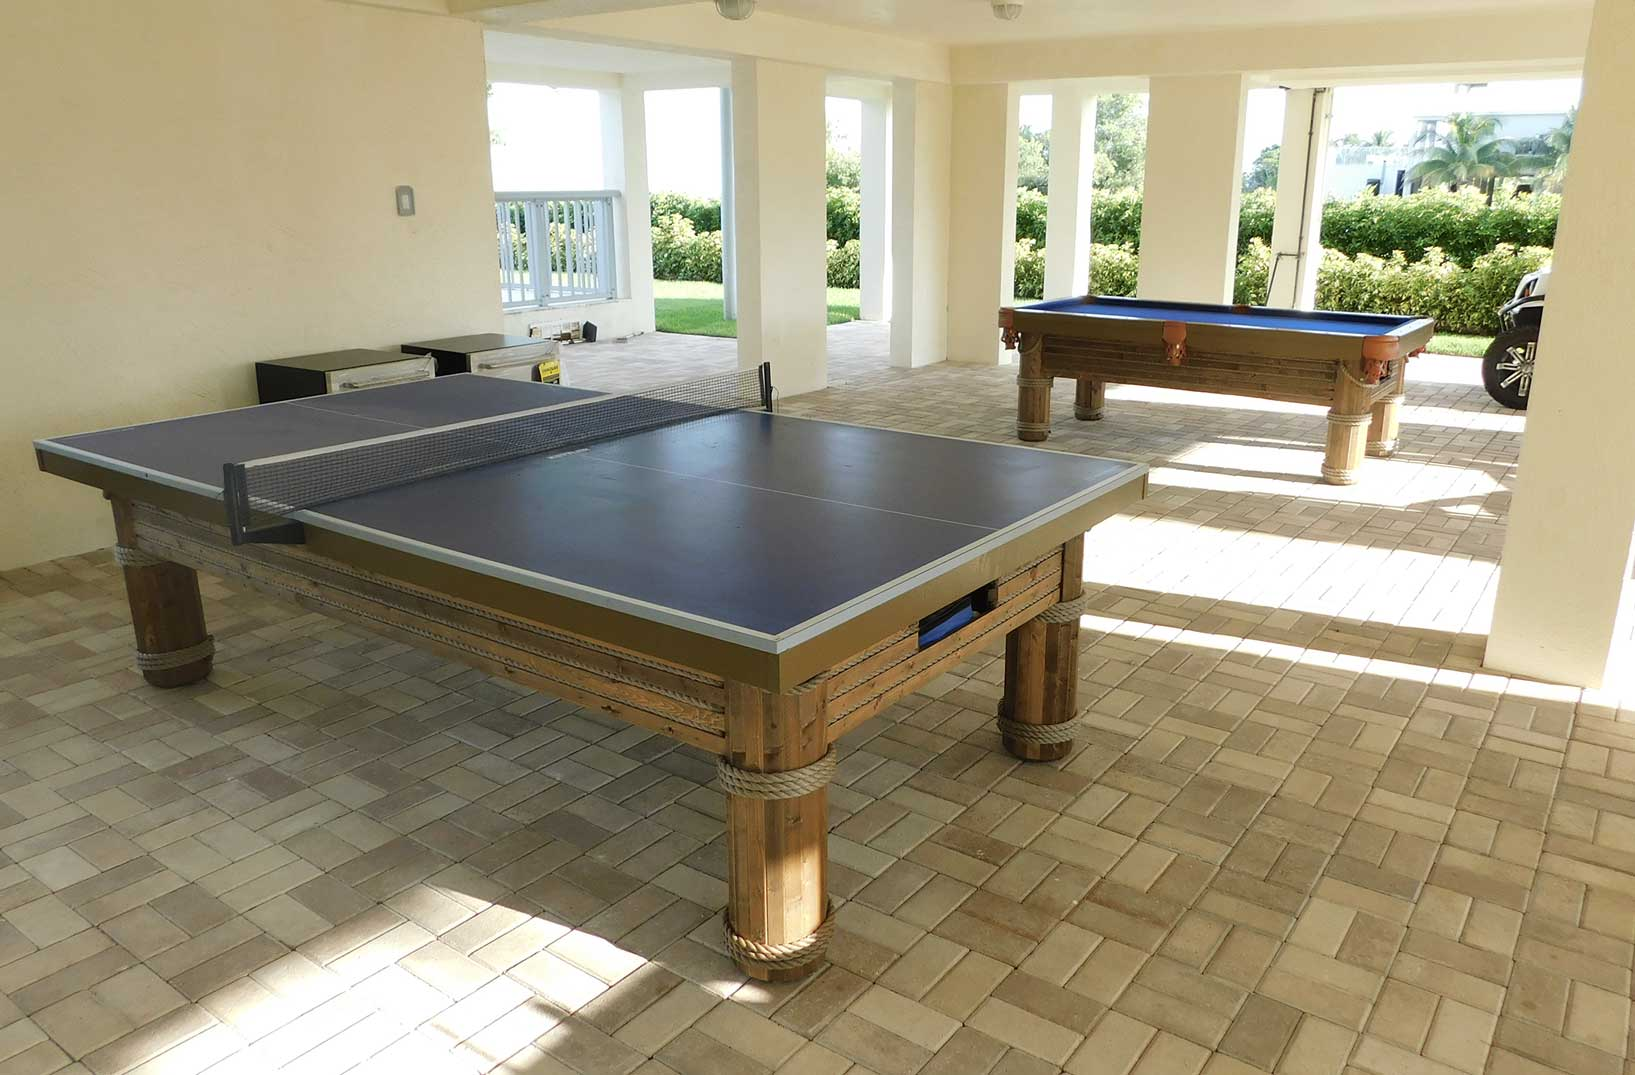 Southwest Florida home with Caribbean Outdoor Pool Table and Caribbean Outdoor Table Tennis Table from R&R Outdoors All Weather Billiards